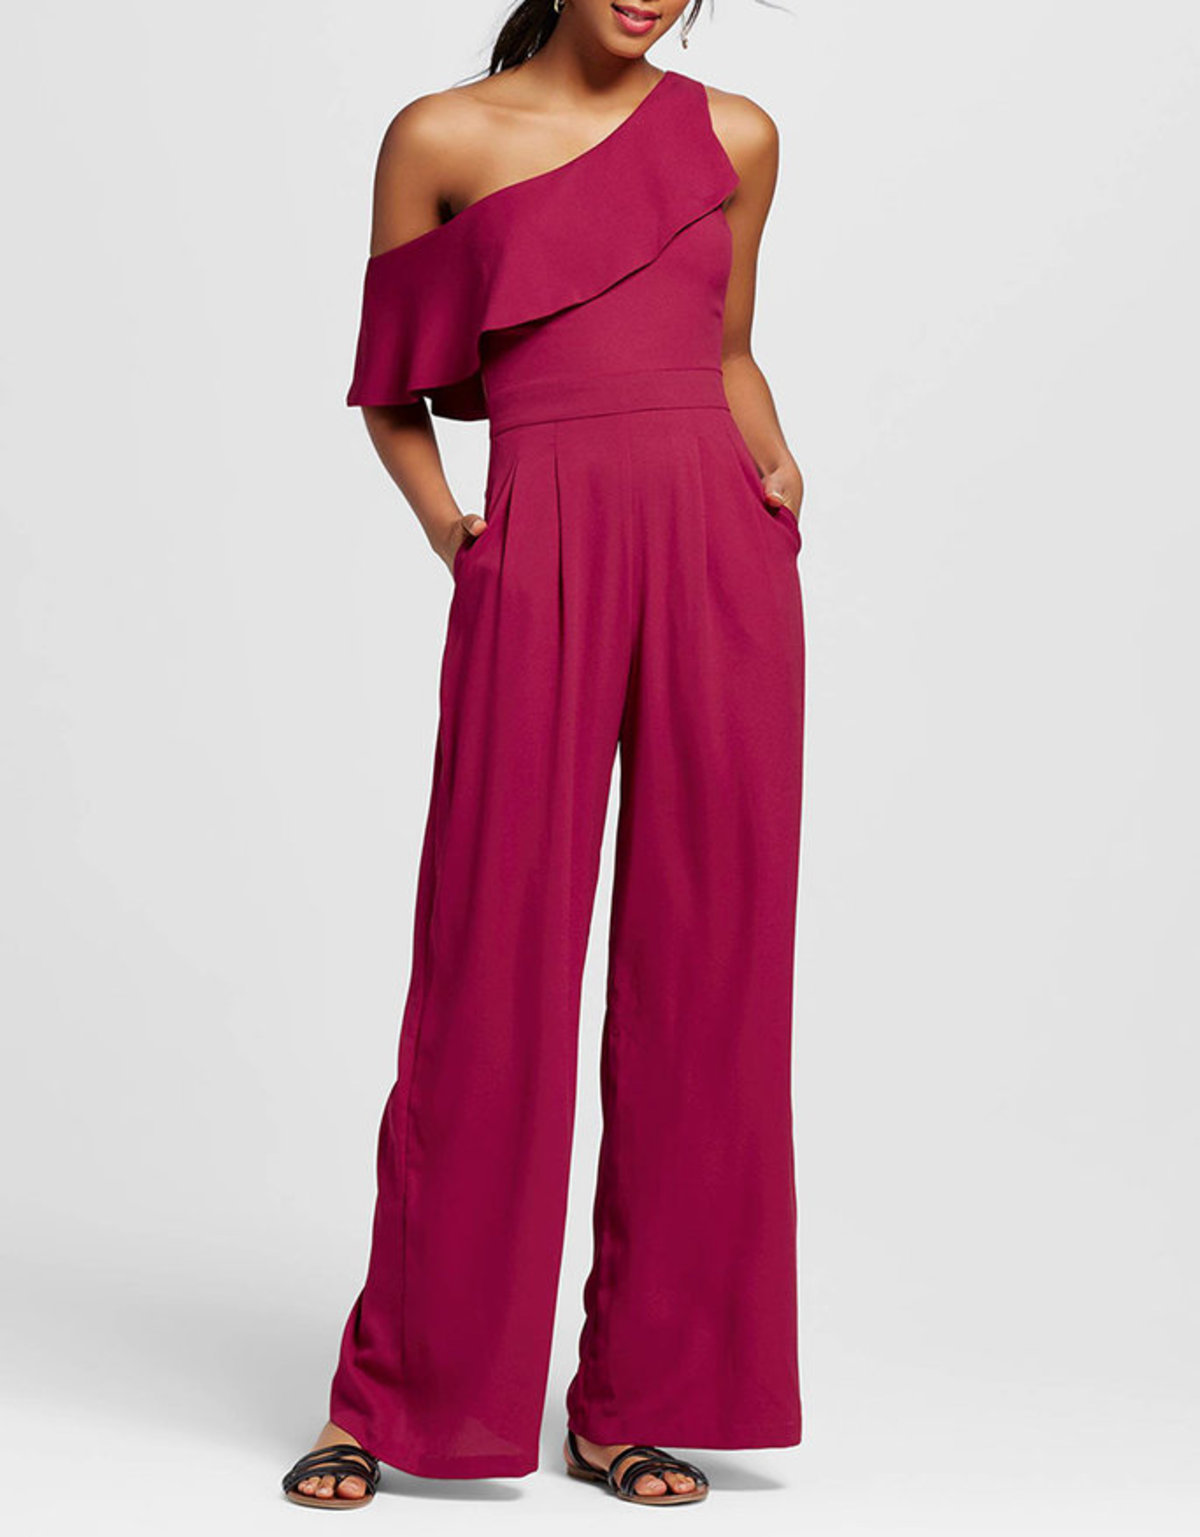 121516-jumpsuits-for-women-5